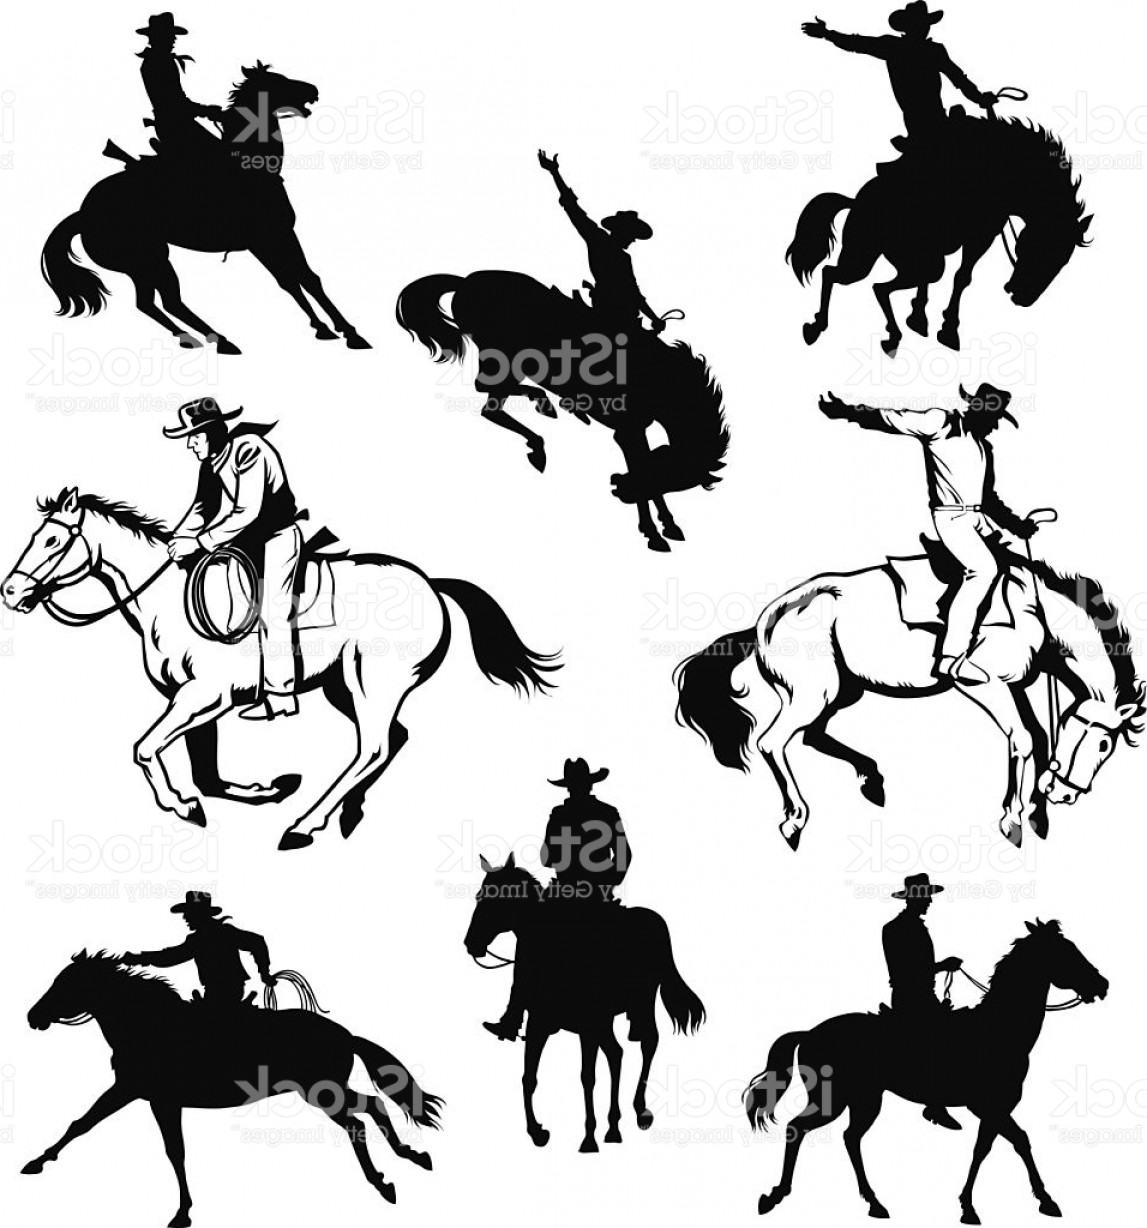 Cowboys Line Drawings Vector: Cowboy And Horse Drawings And Silhouettes Gm